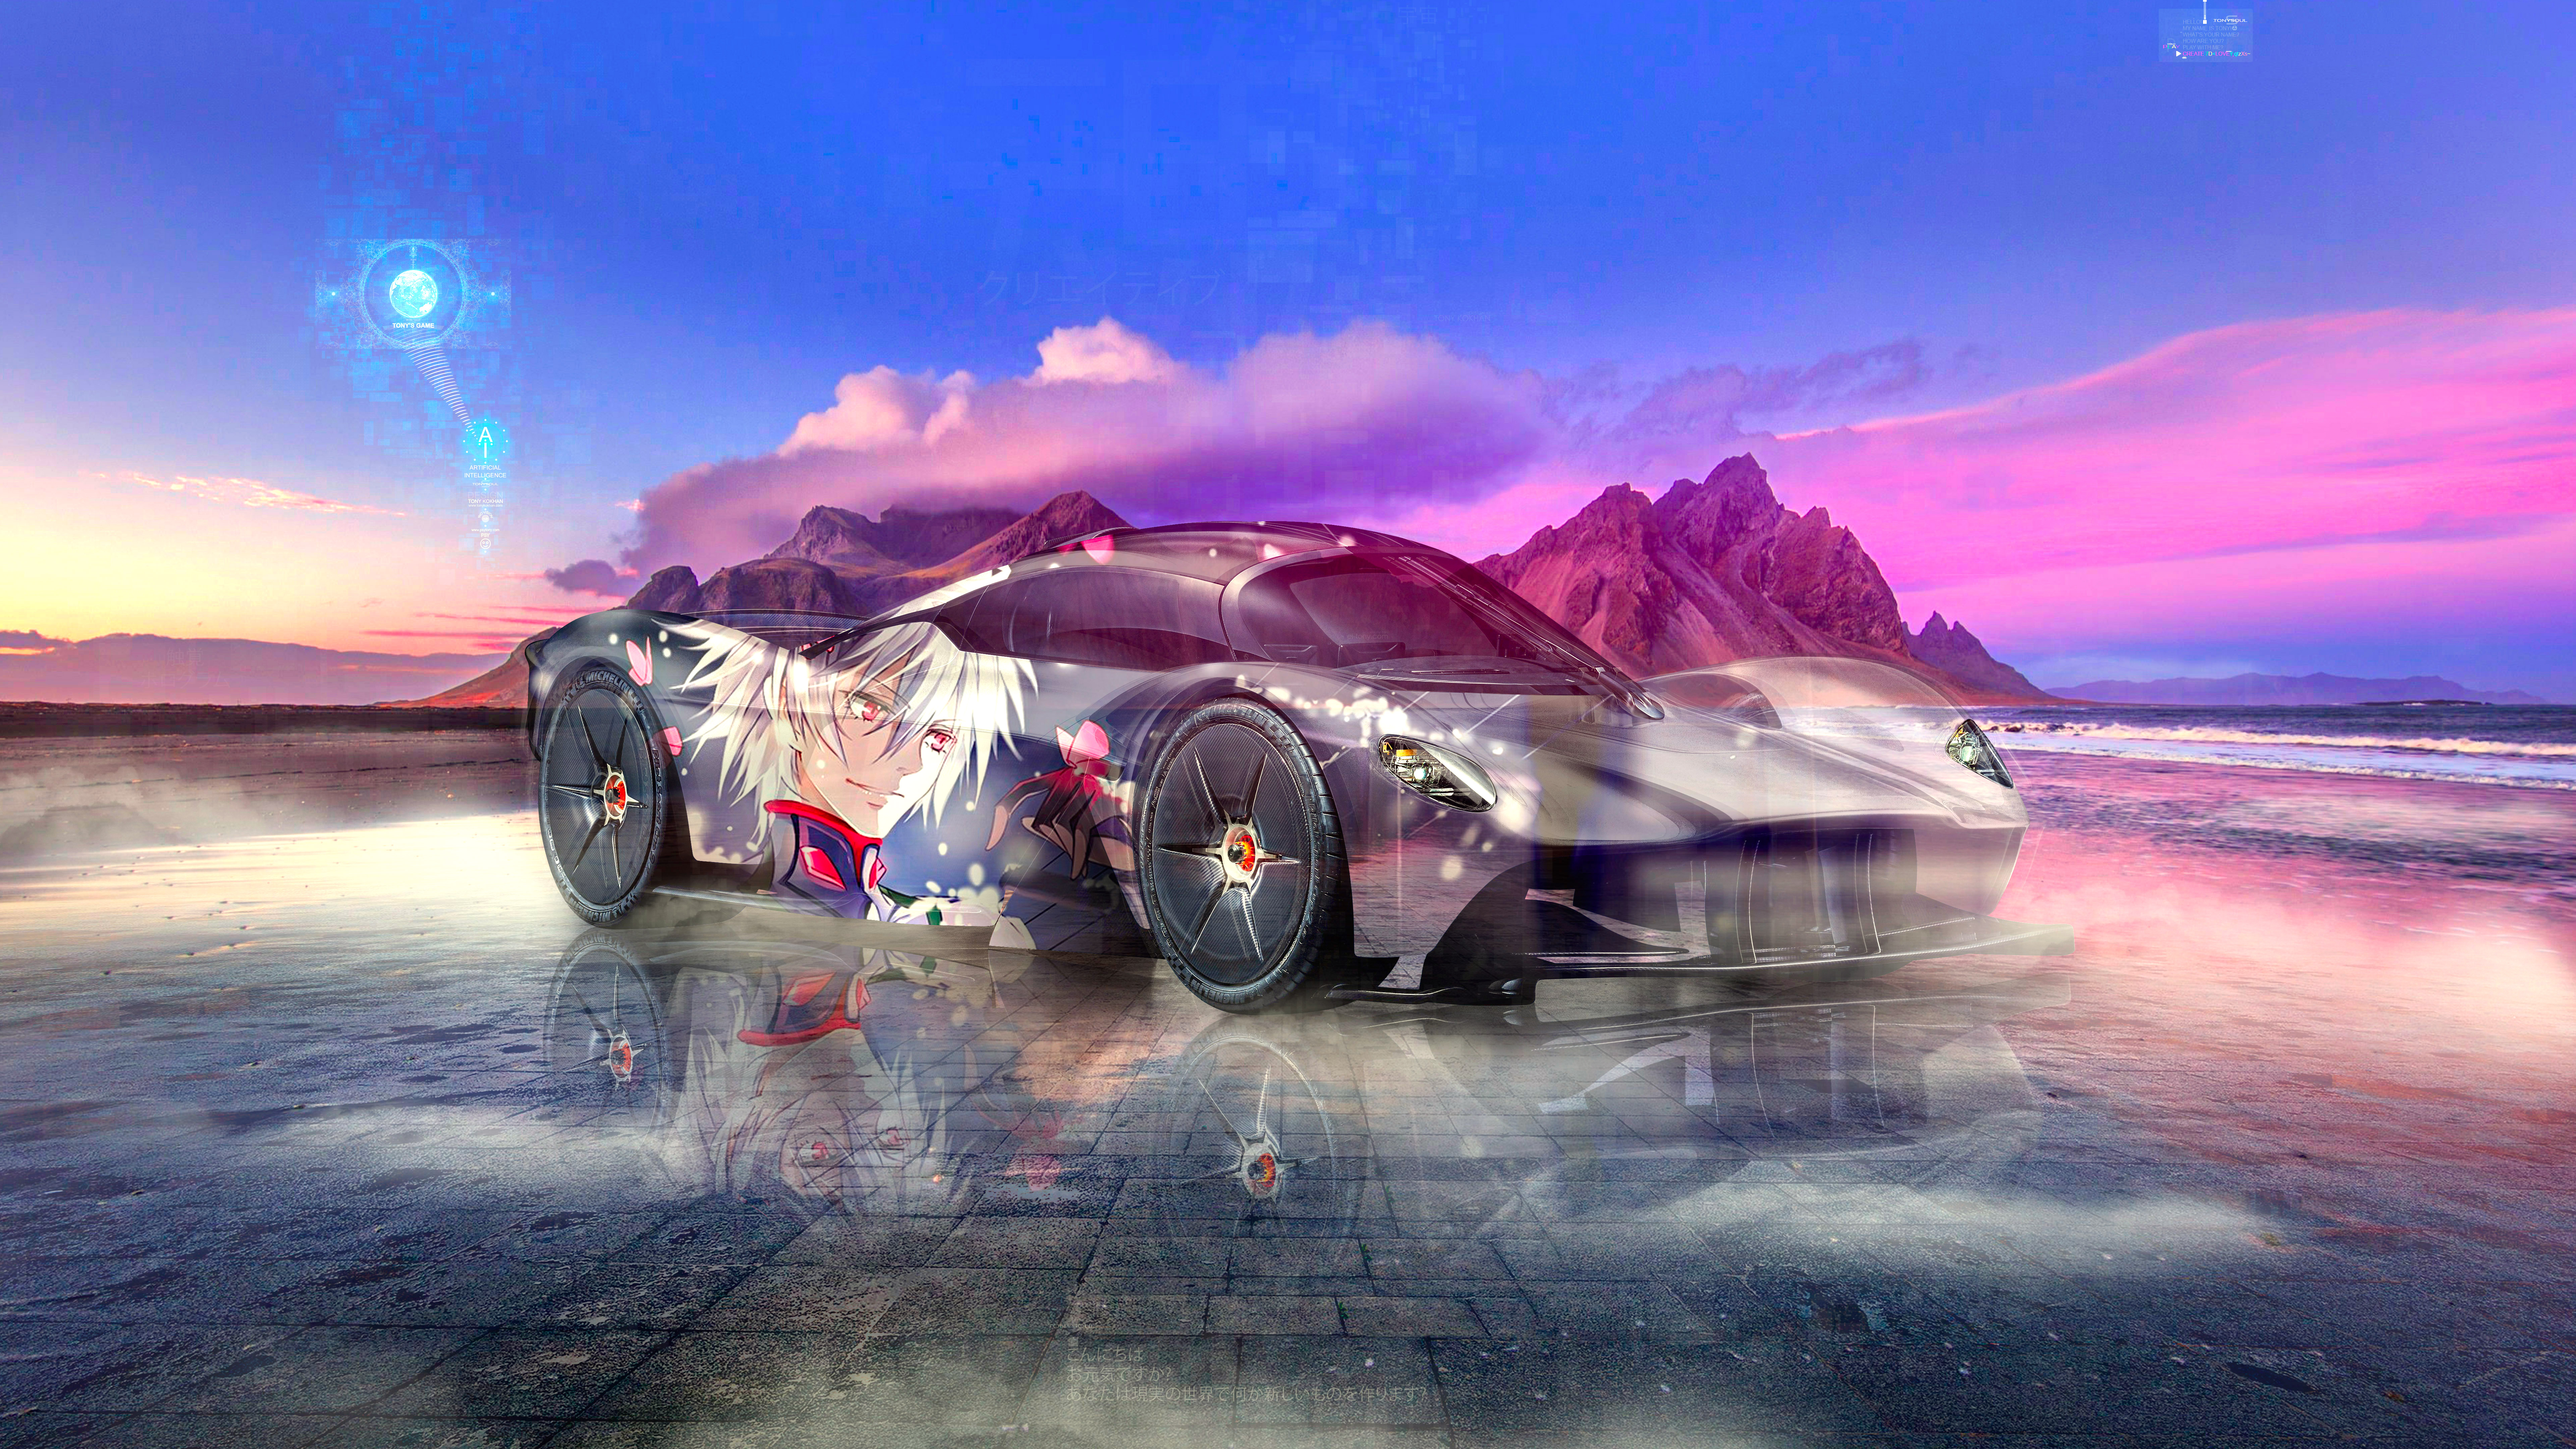 Aston-Martin-Valkyrie-Super-Anime-Kaworu-Nagisa-Evangelion-Crystal-Creative-Soul-Artificial-Intelligence-TonysGame-Car-2021-Multicolors-8K-Wallpapers-by-Tony-Kokhan-www.el-tony.com-image